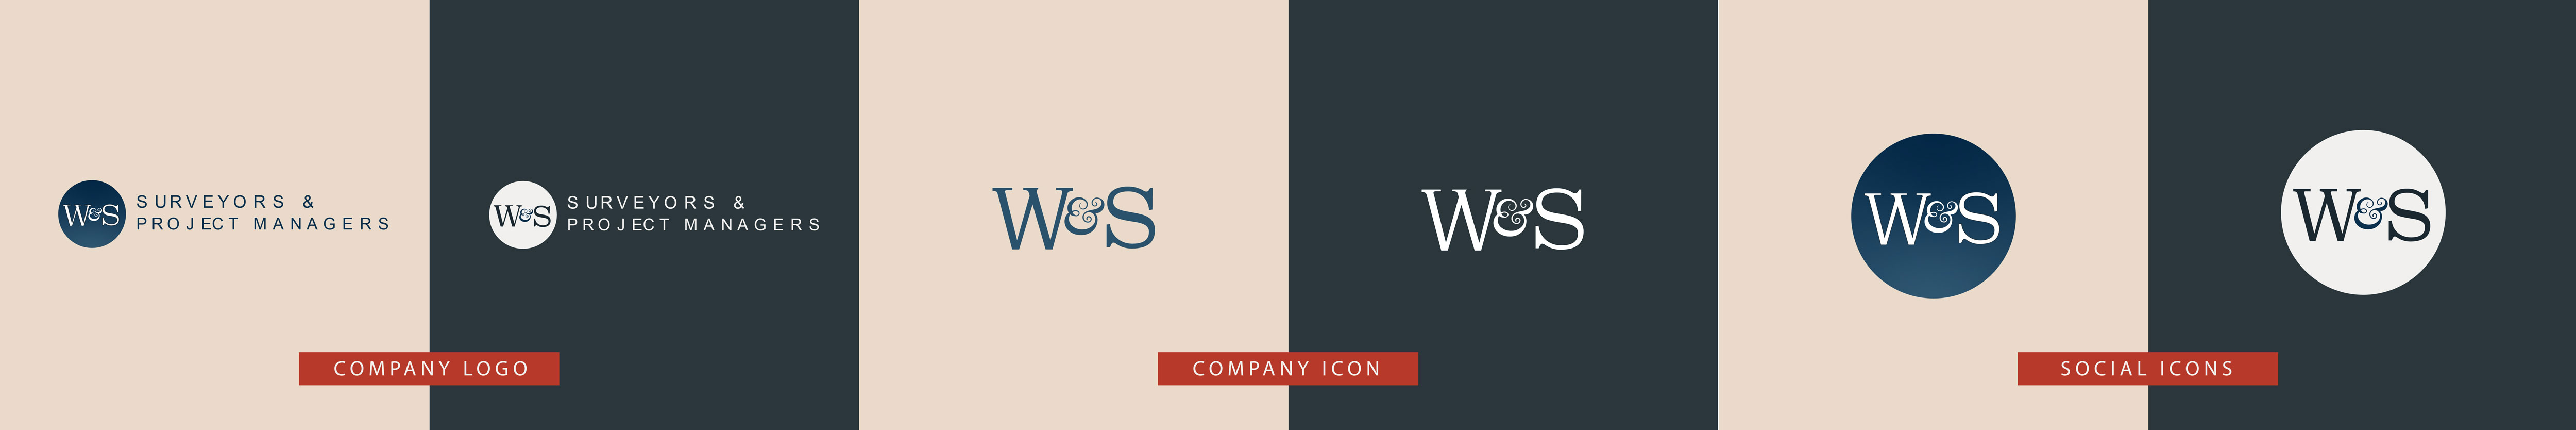 w and s surveyors brand identity image